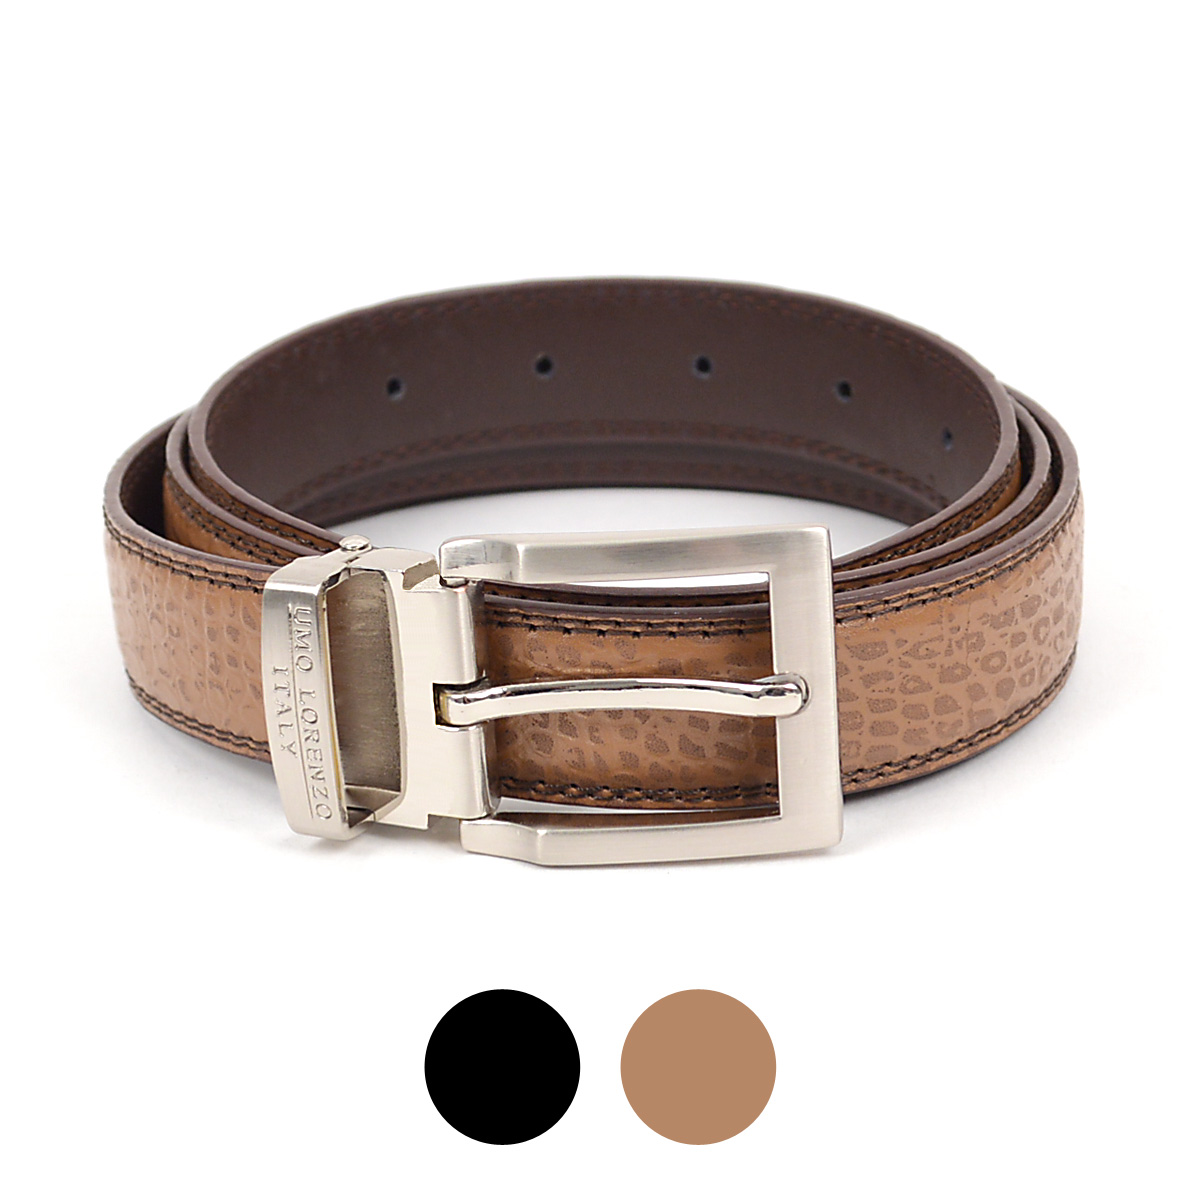 wholesale leather belt now available at wholesale central